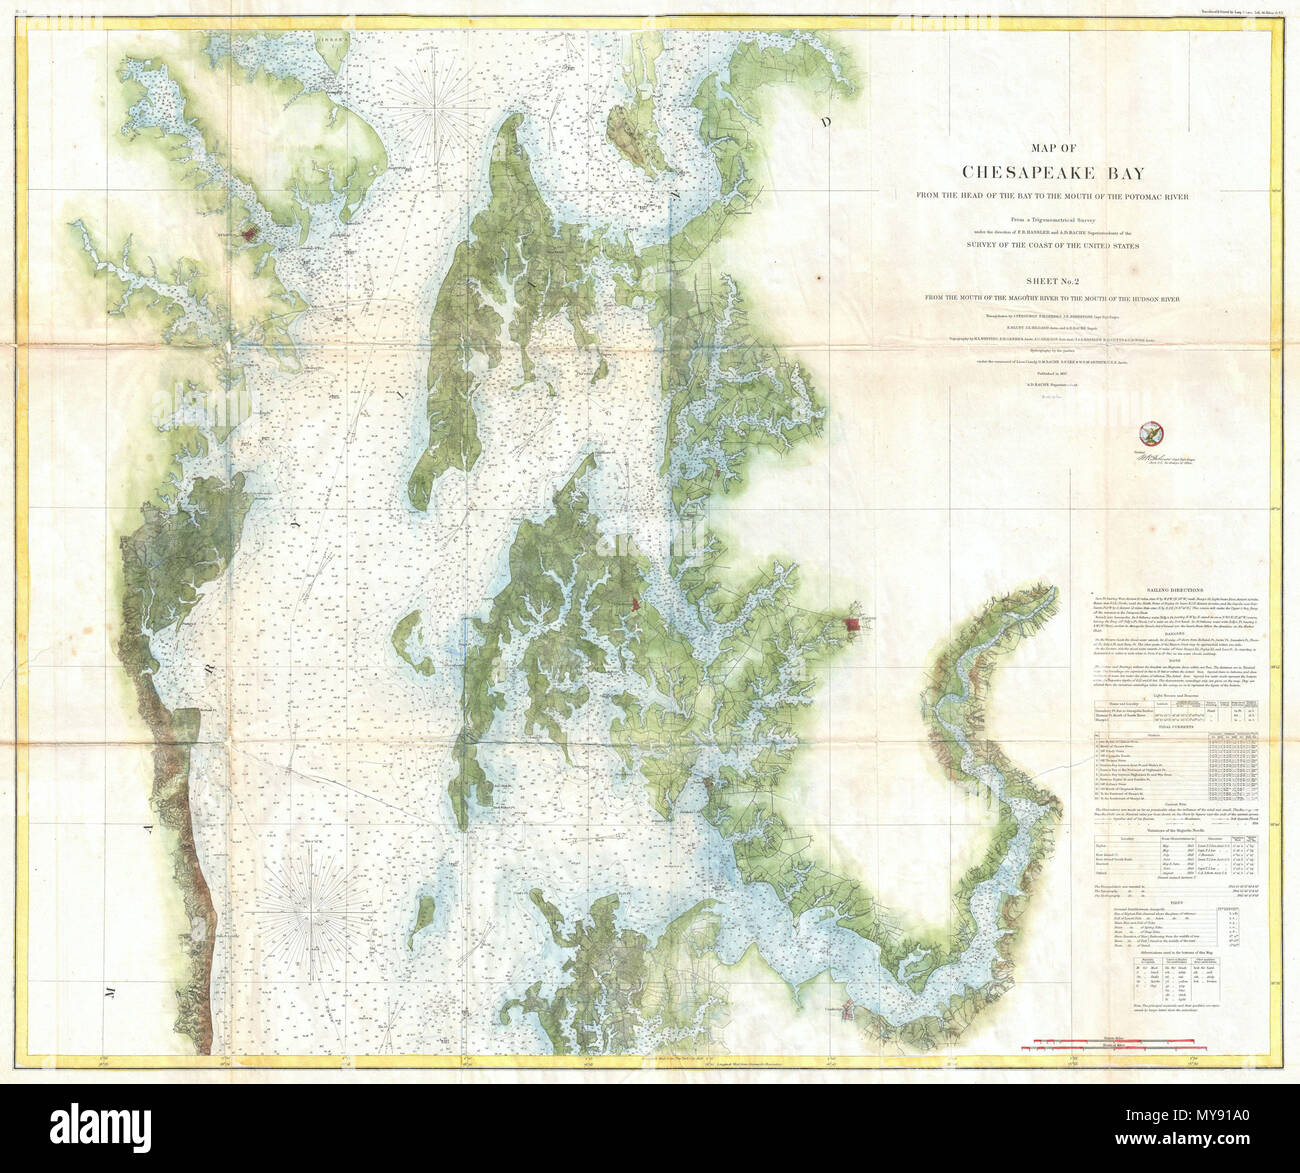 Map Of Chesapeake Bay Stock Photos & Map Of Chesapeake Bay Stock ...